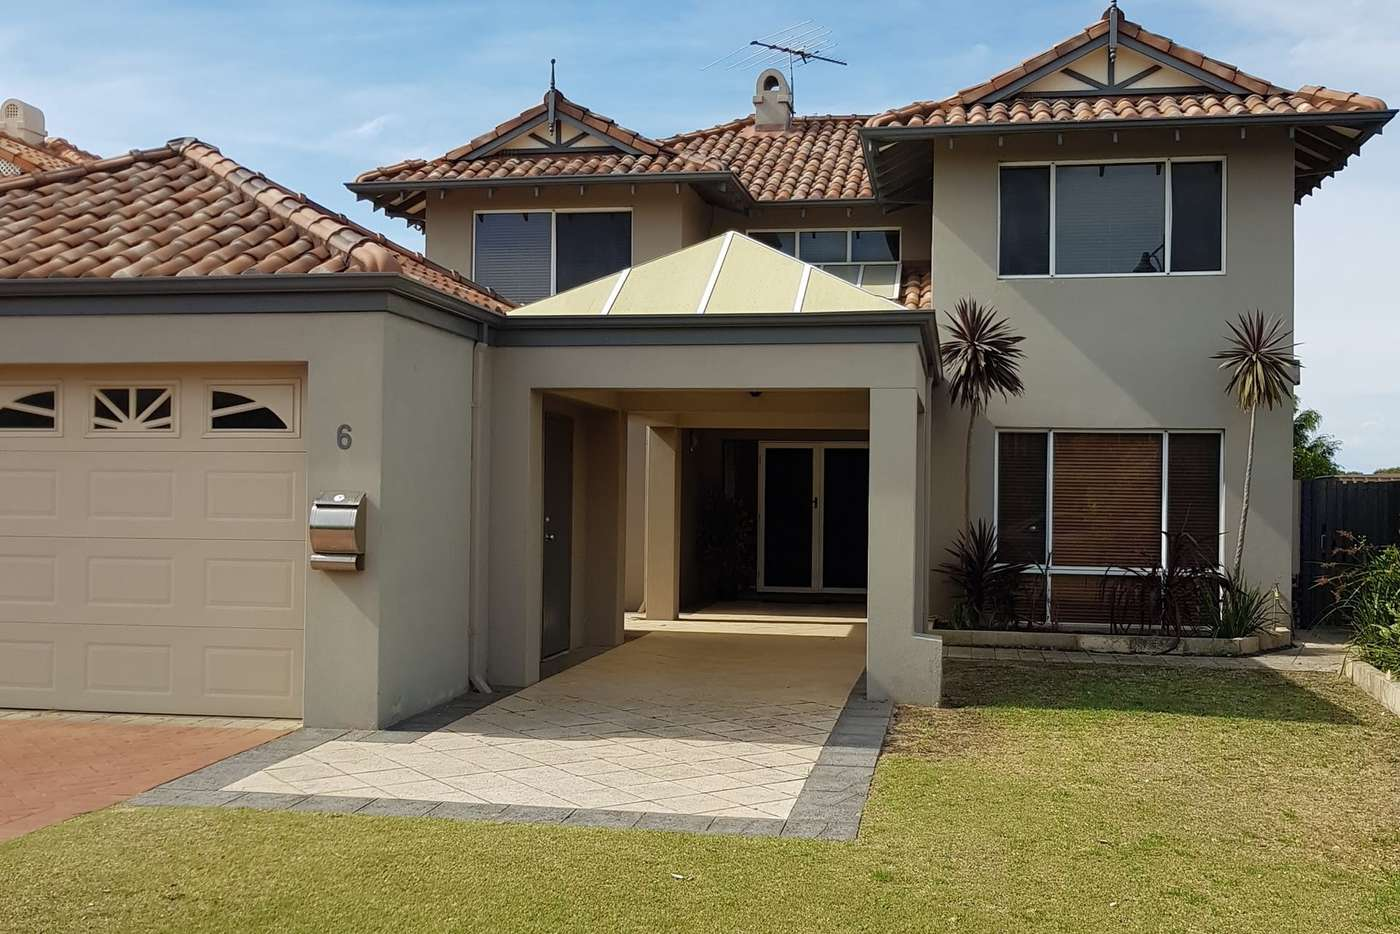 Main view of Homely house listing, 6 Wave Cove, Port Kennedy WA 6172